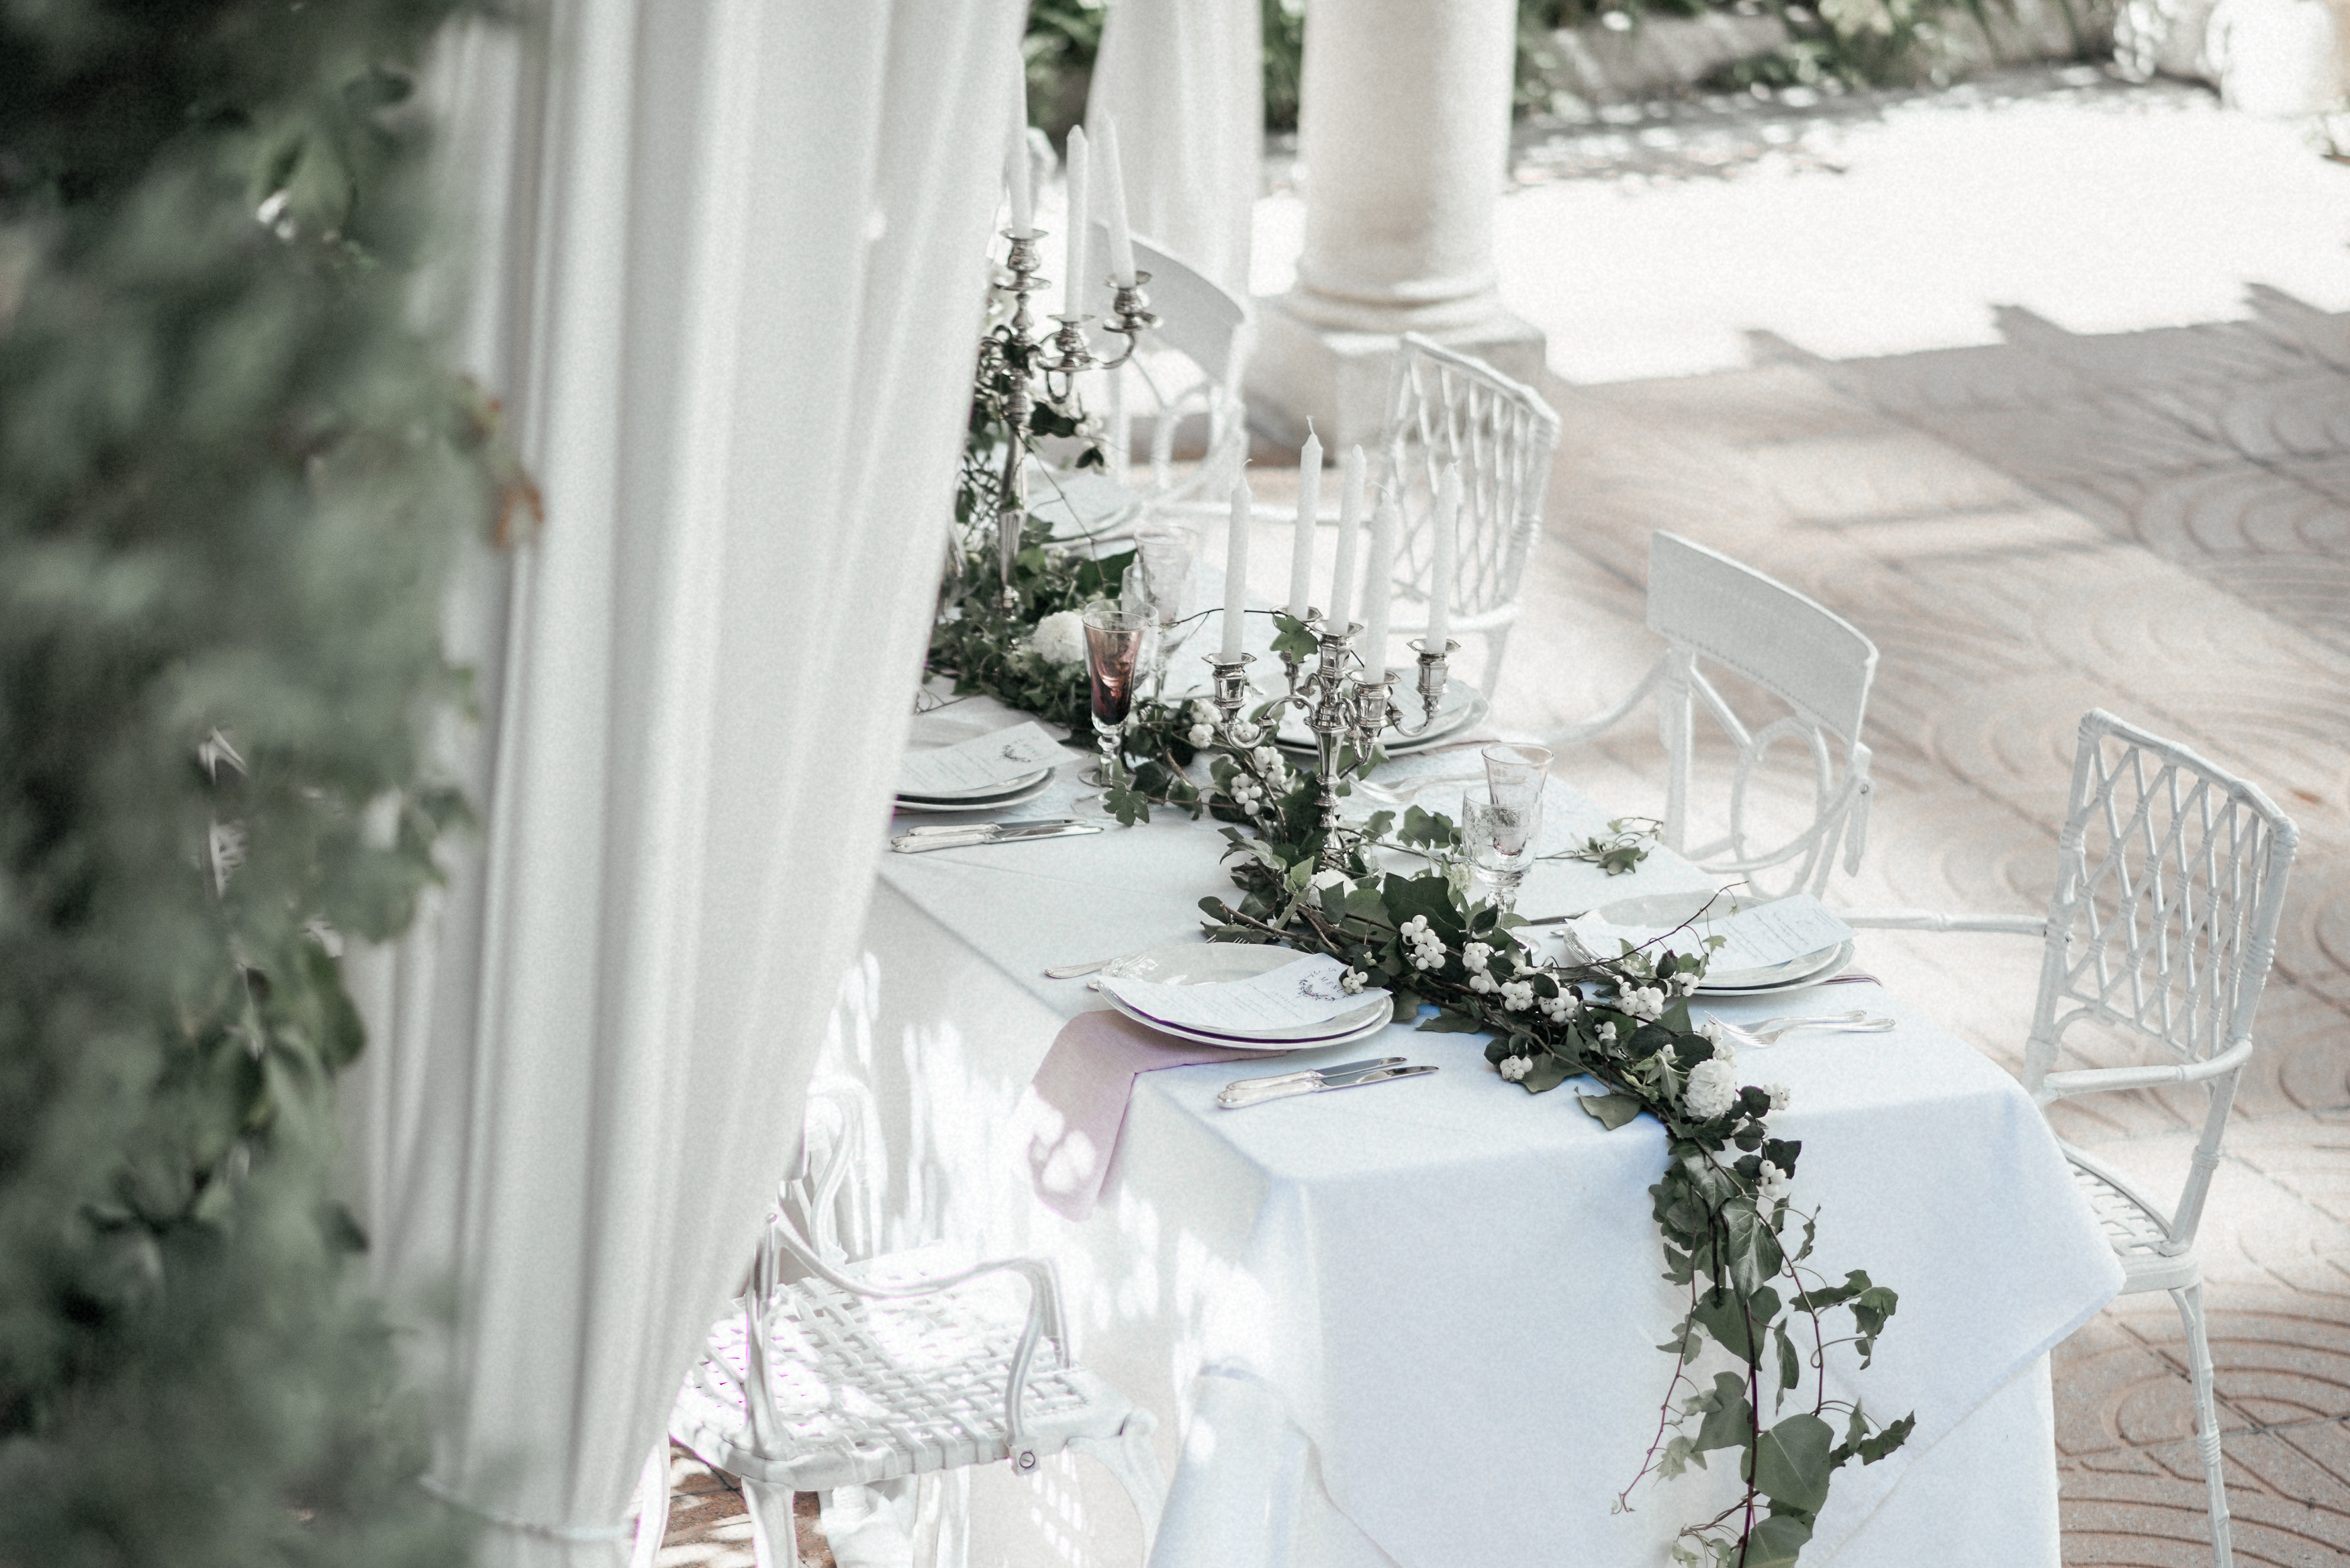 las mesas del miguel angel - quique magas - wedding style magazine